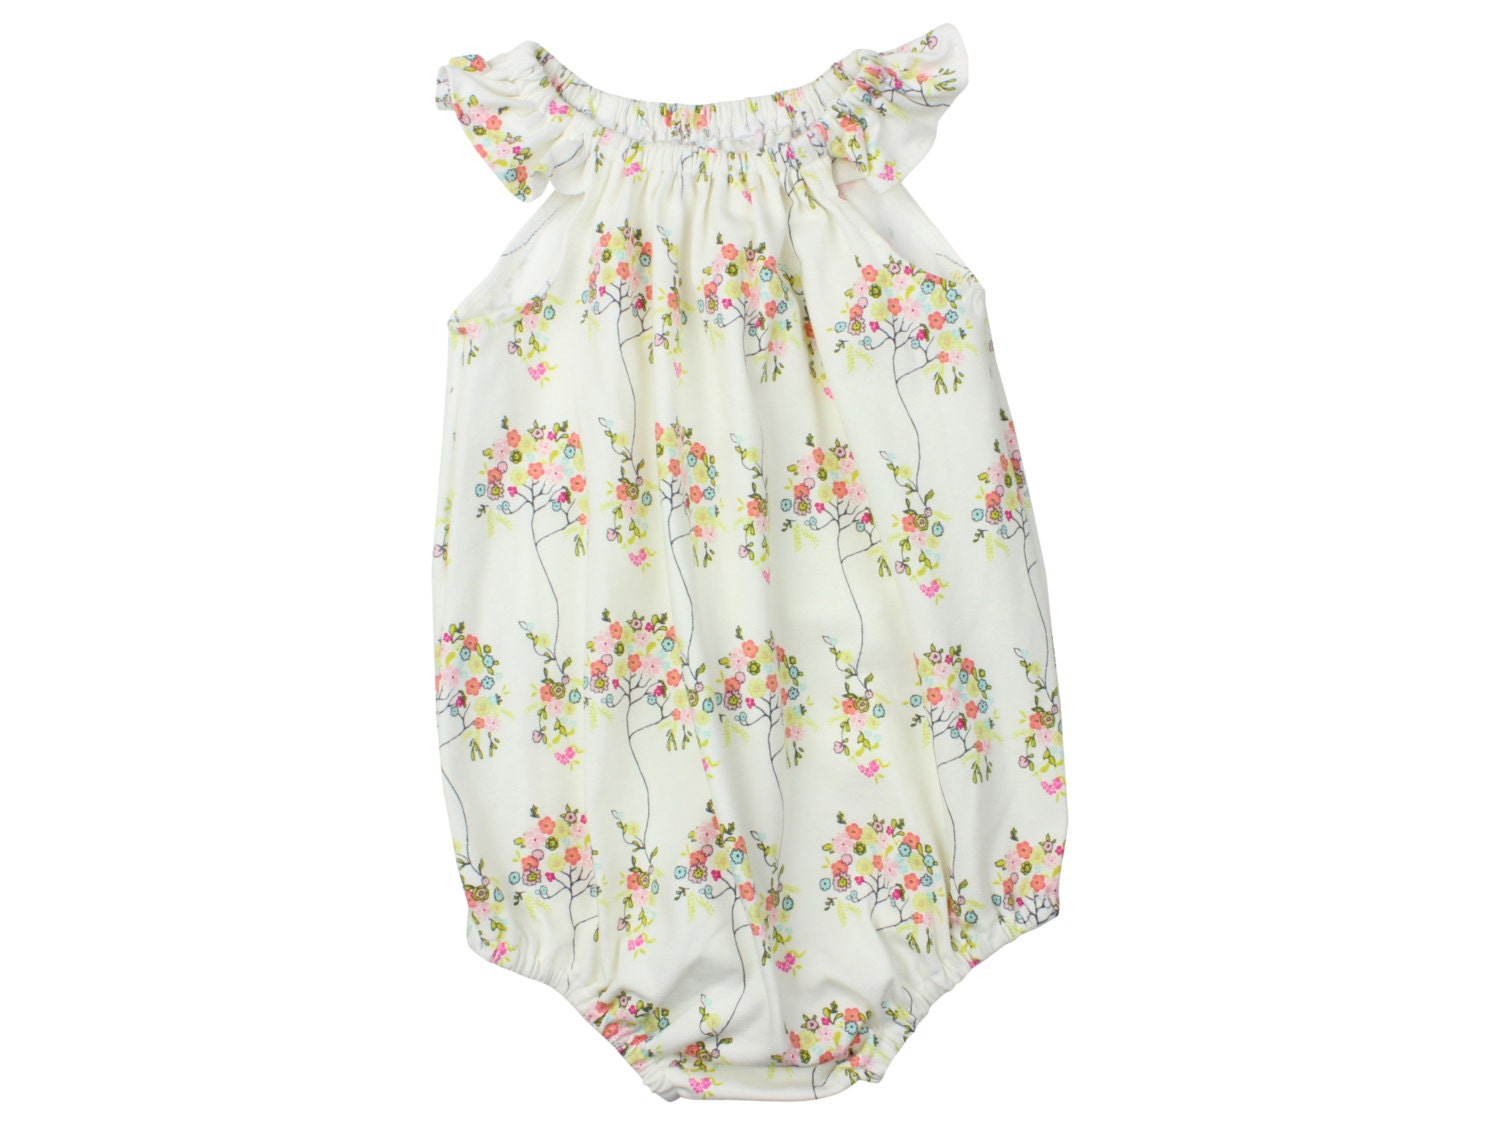 b2ffb890ad7a Baby Romper Toddler Romper Floral Tree Baby Romper Summer ...